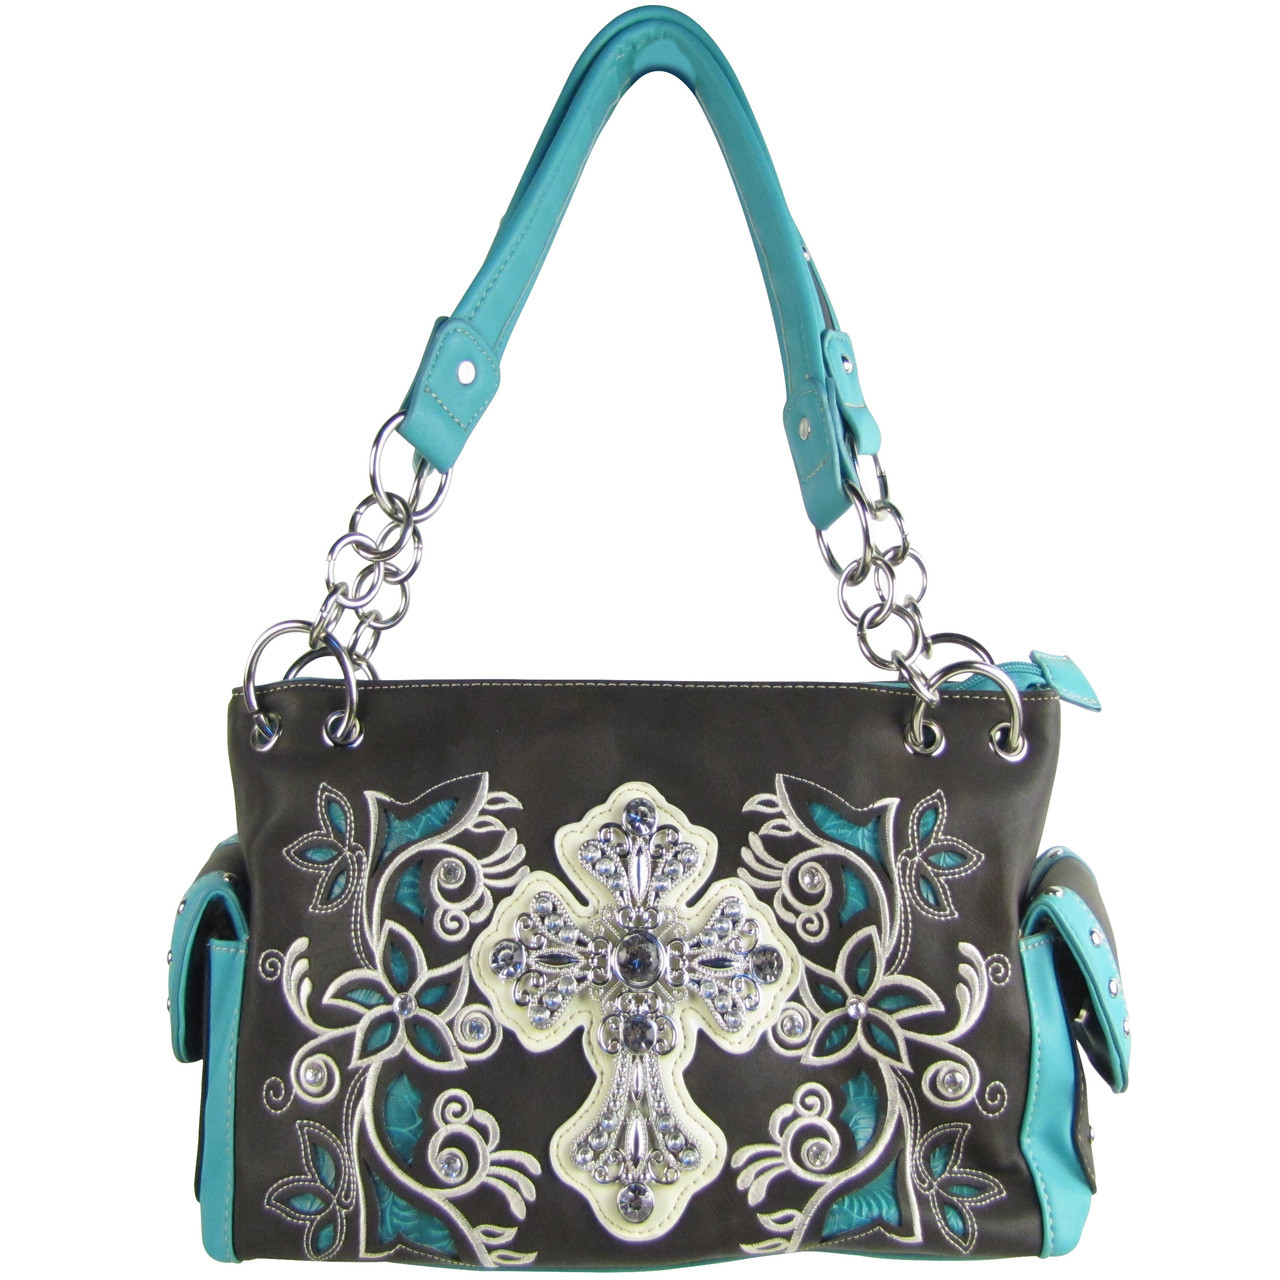 BLACK TURQUOISE FLOWER RHINESTONE CROSS LOOK SHOULDER HANDBAG HB1-84LCRBLK/TRQ